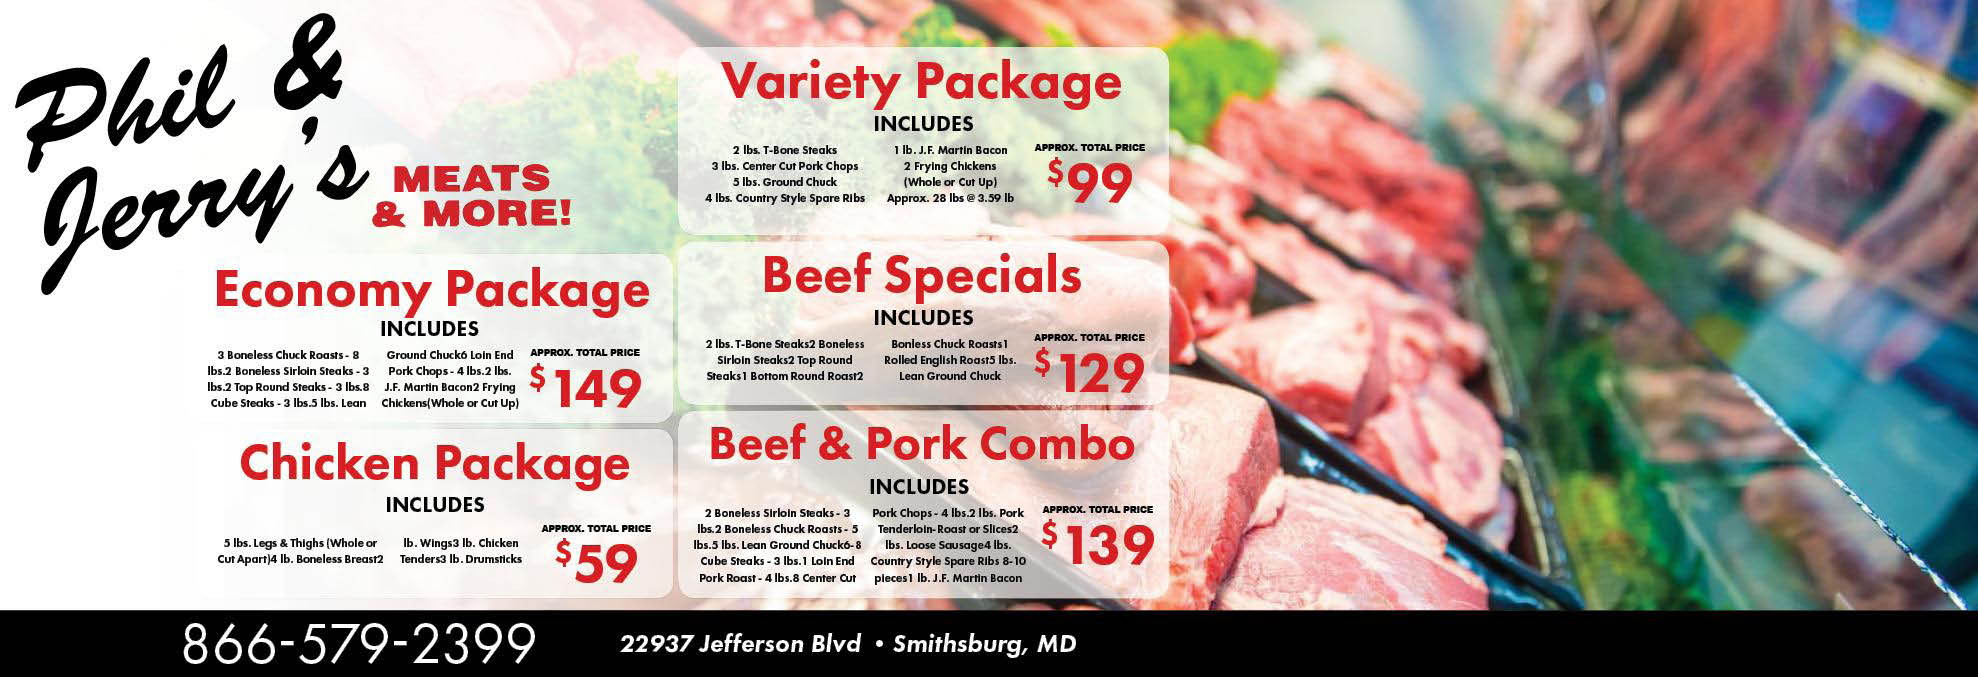 Phil & Jerry's Meats & More Logo, Meats, Deli